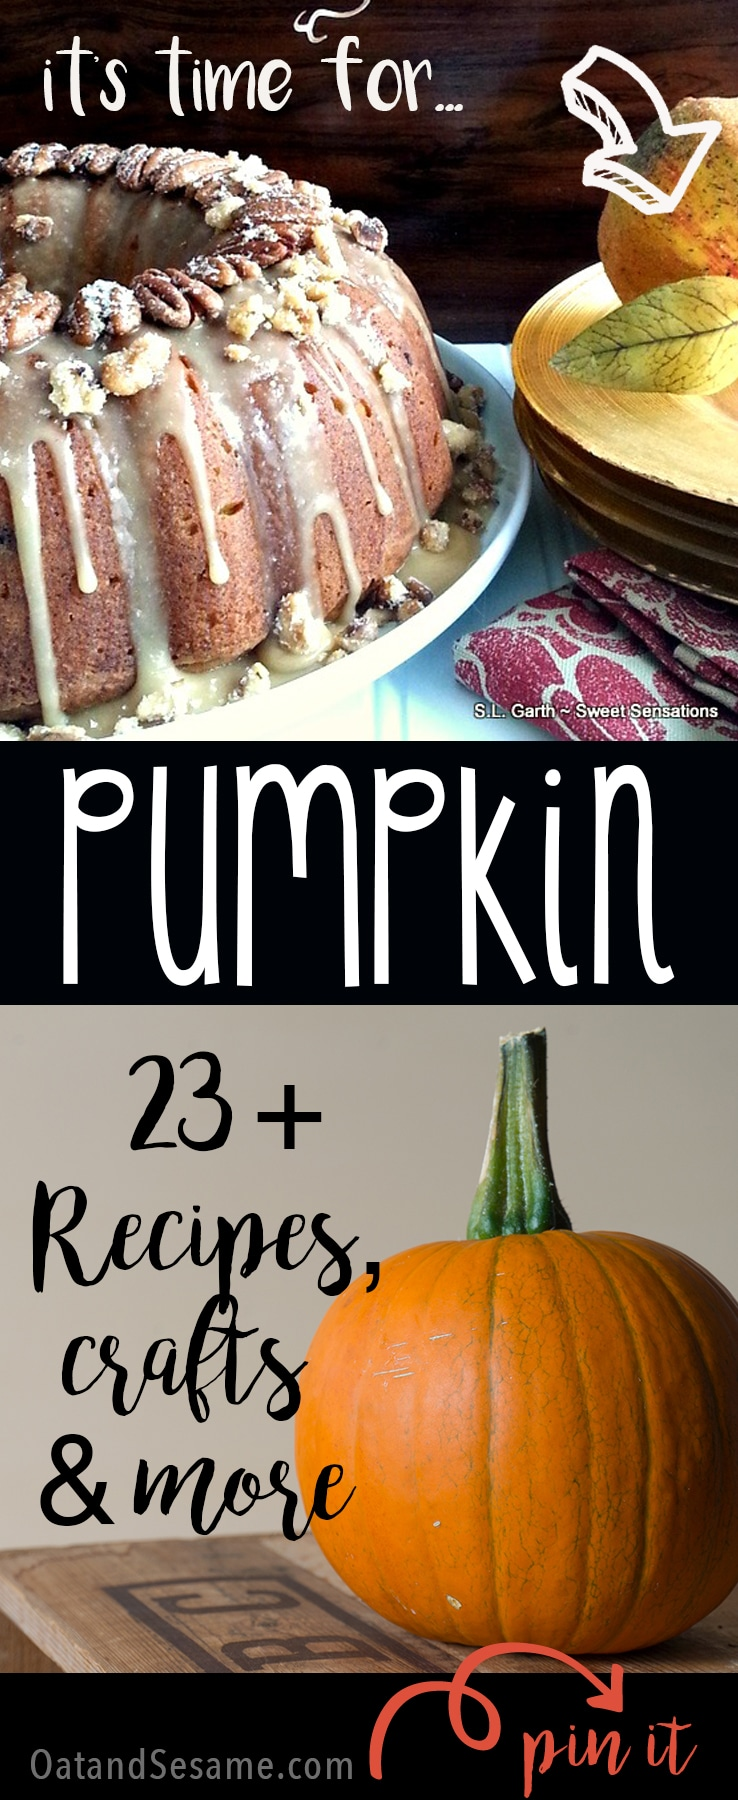 23 + Awesome Pumpkin Recipes, Crafts & More! Celebrate #Fall | Recipe at OatandSesame.com